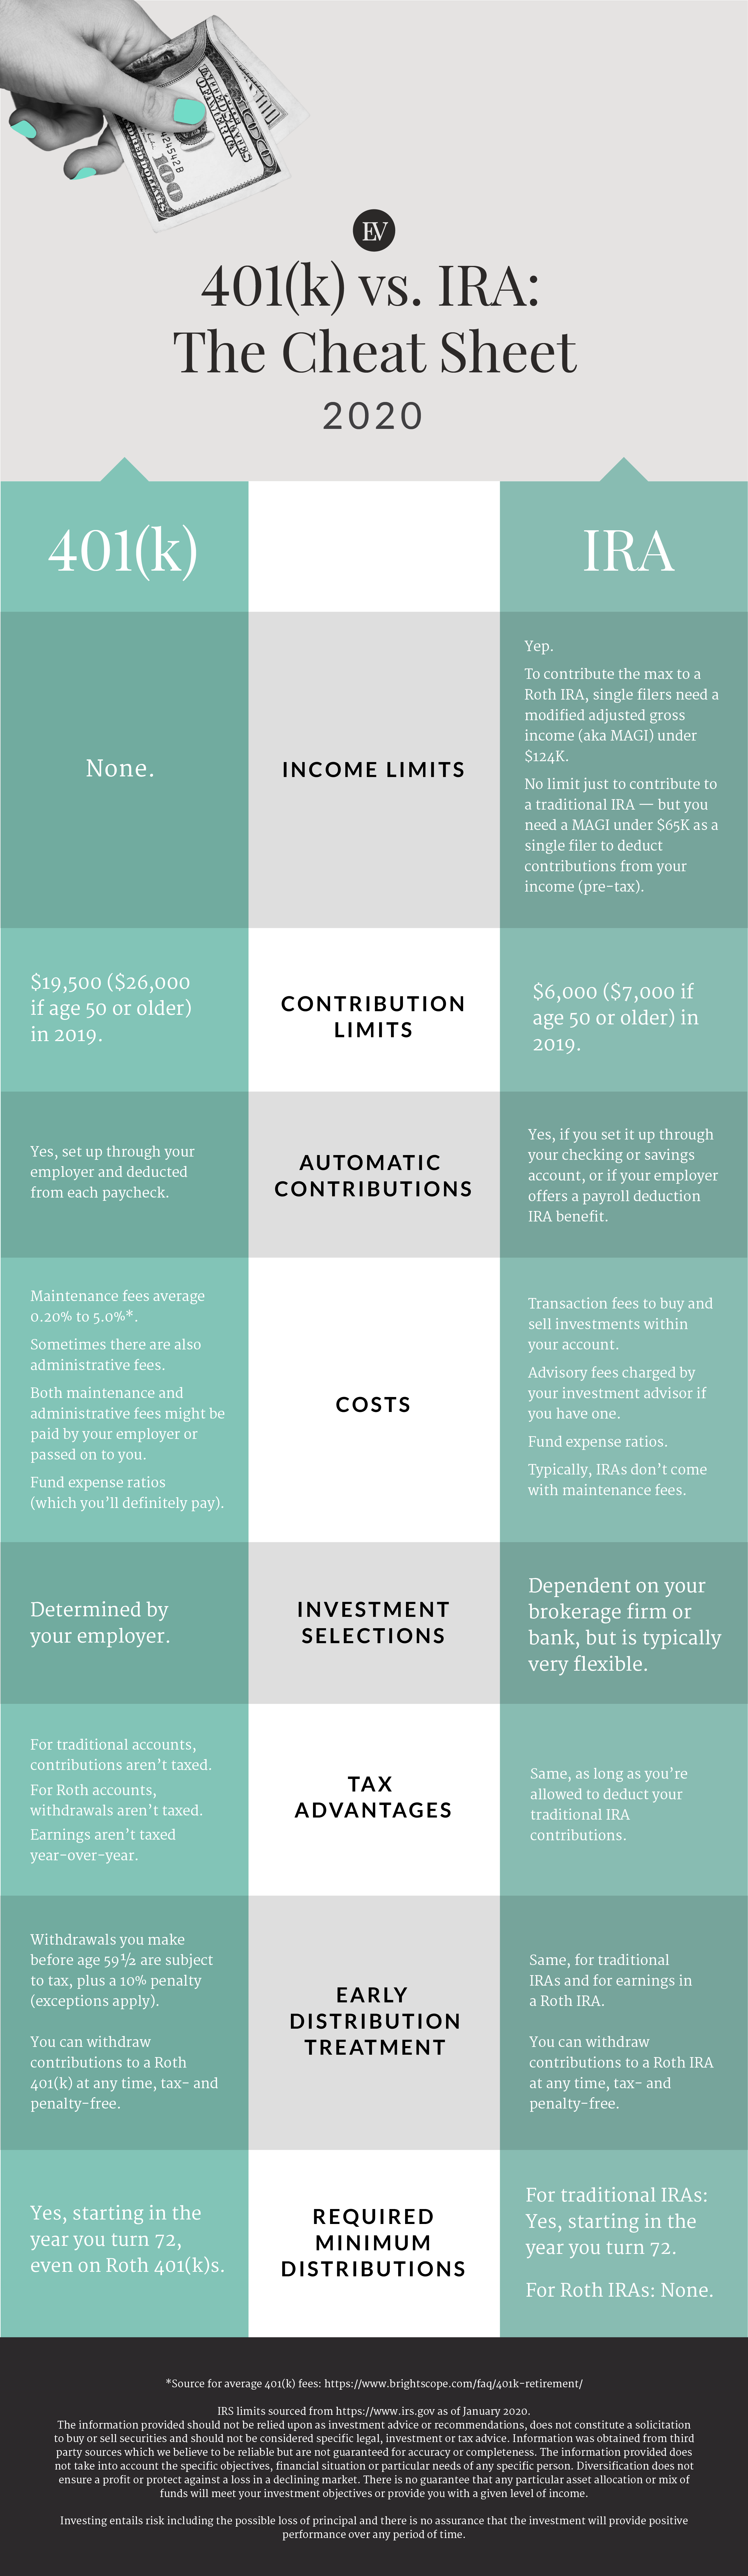 401(k) vs. IRA: The Cheat Sheet